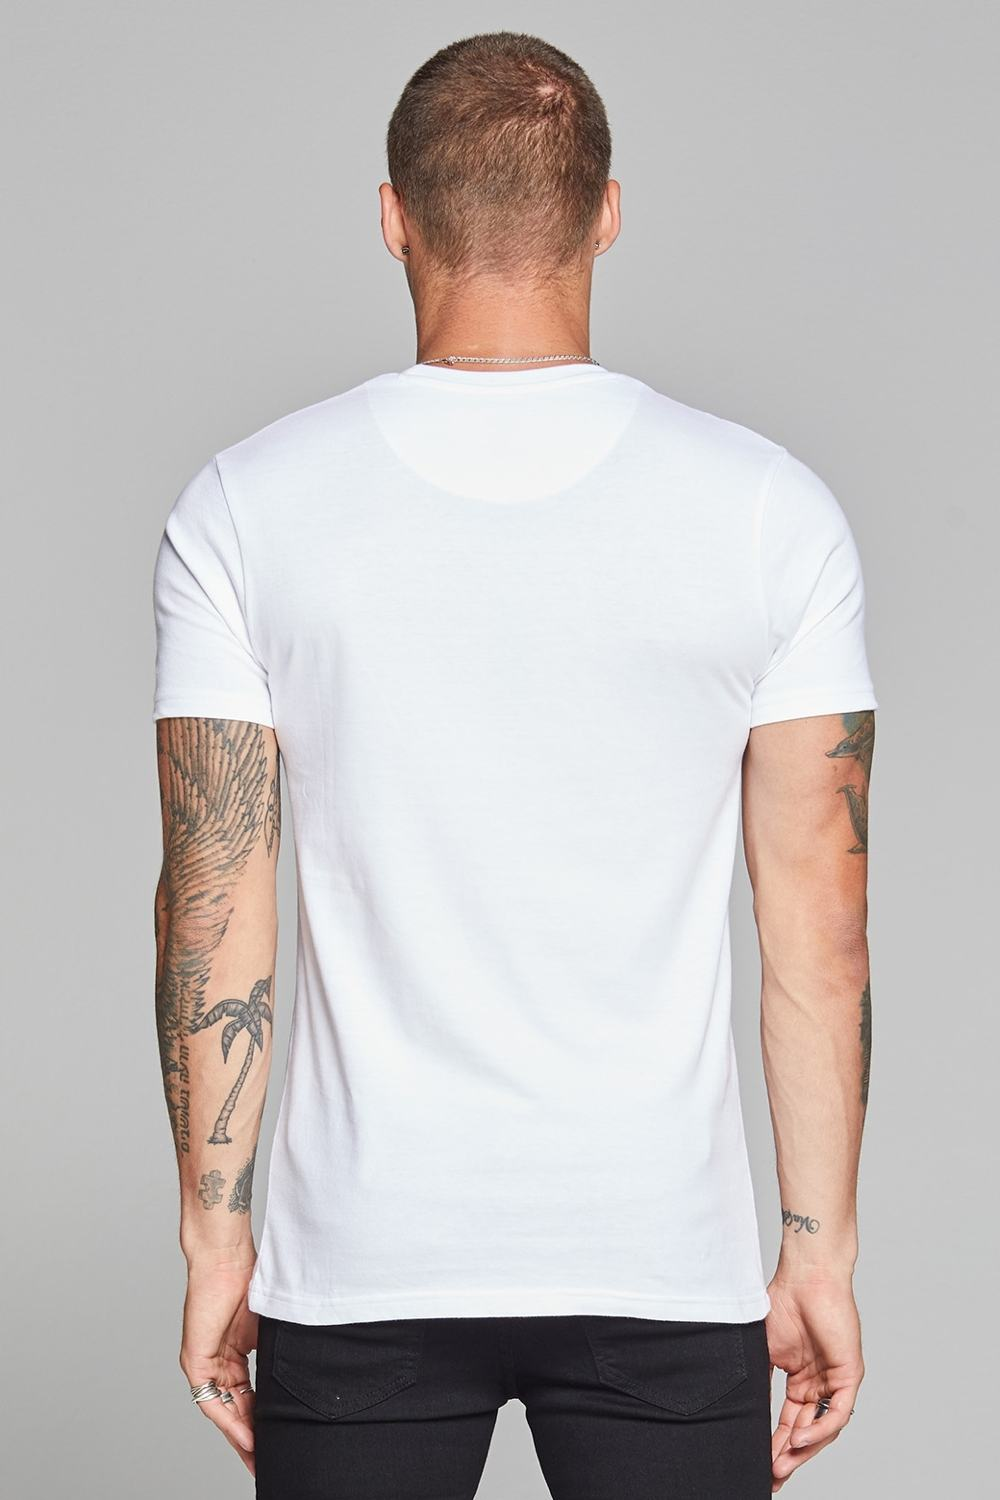 Good For Nothing Authentic Script T-shirt - White - 2